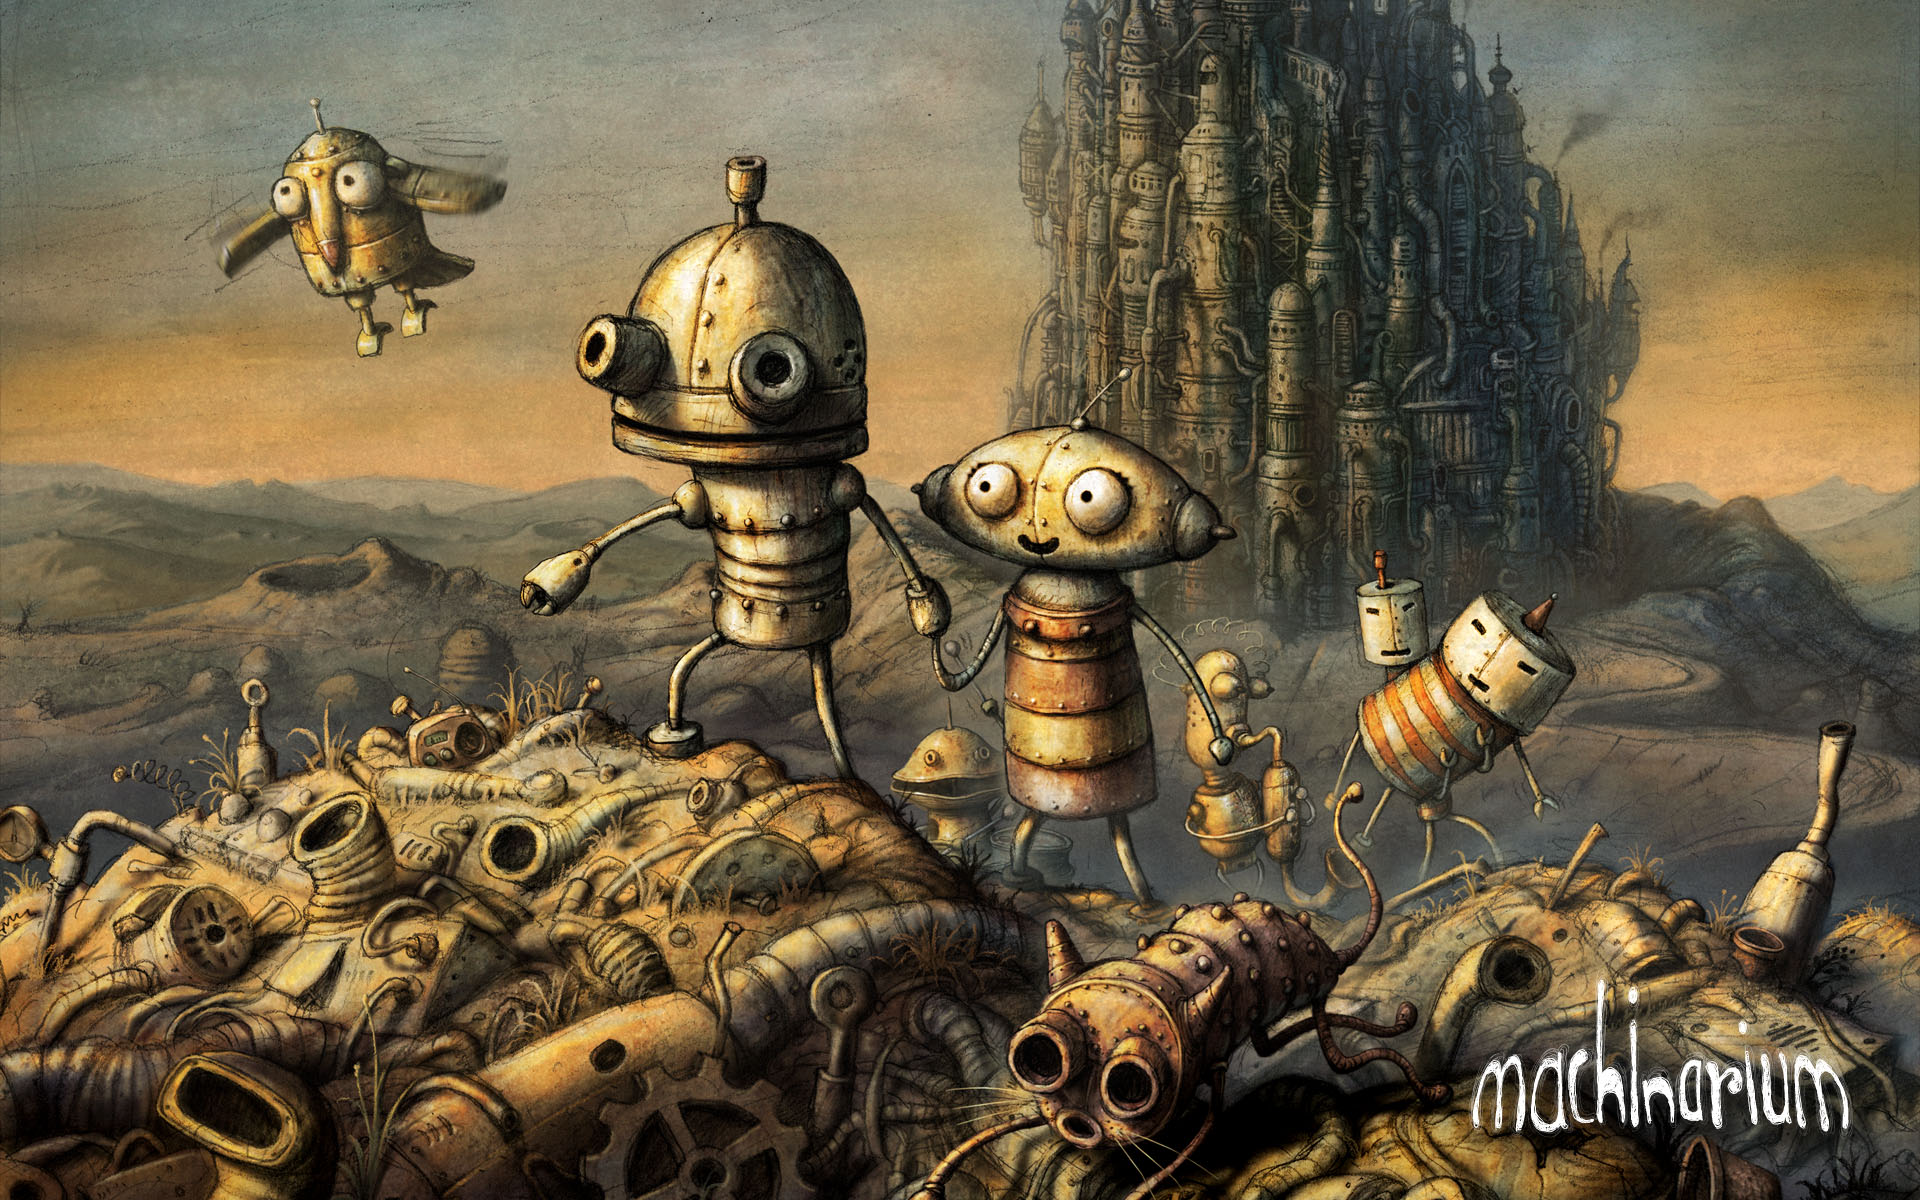 Review | Machinarium